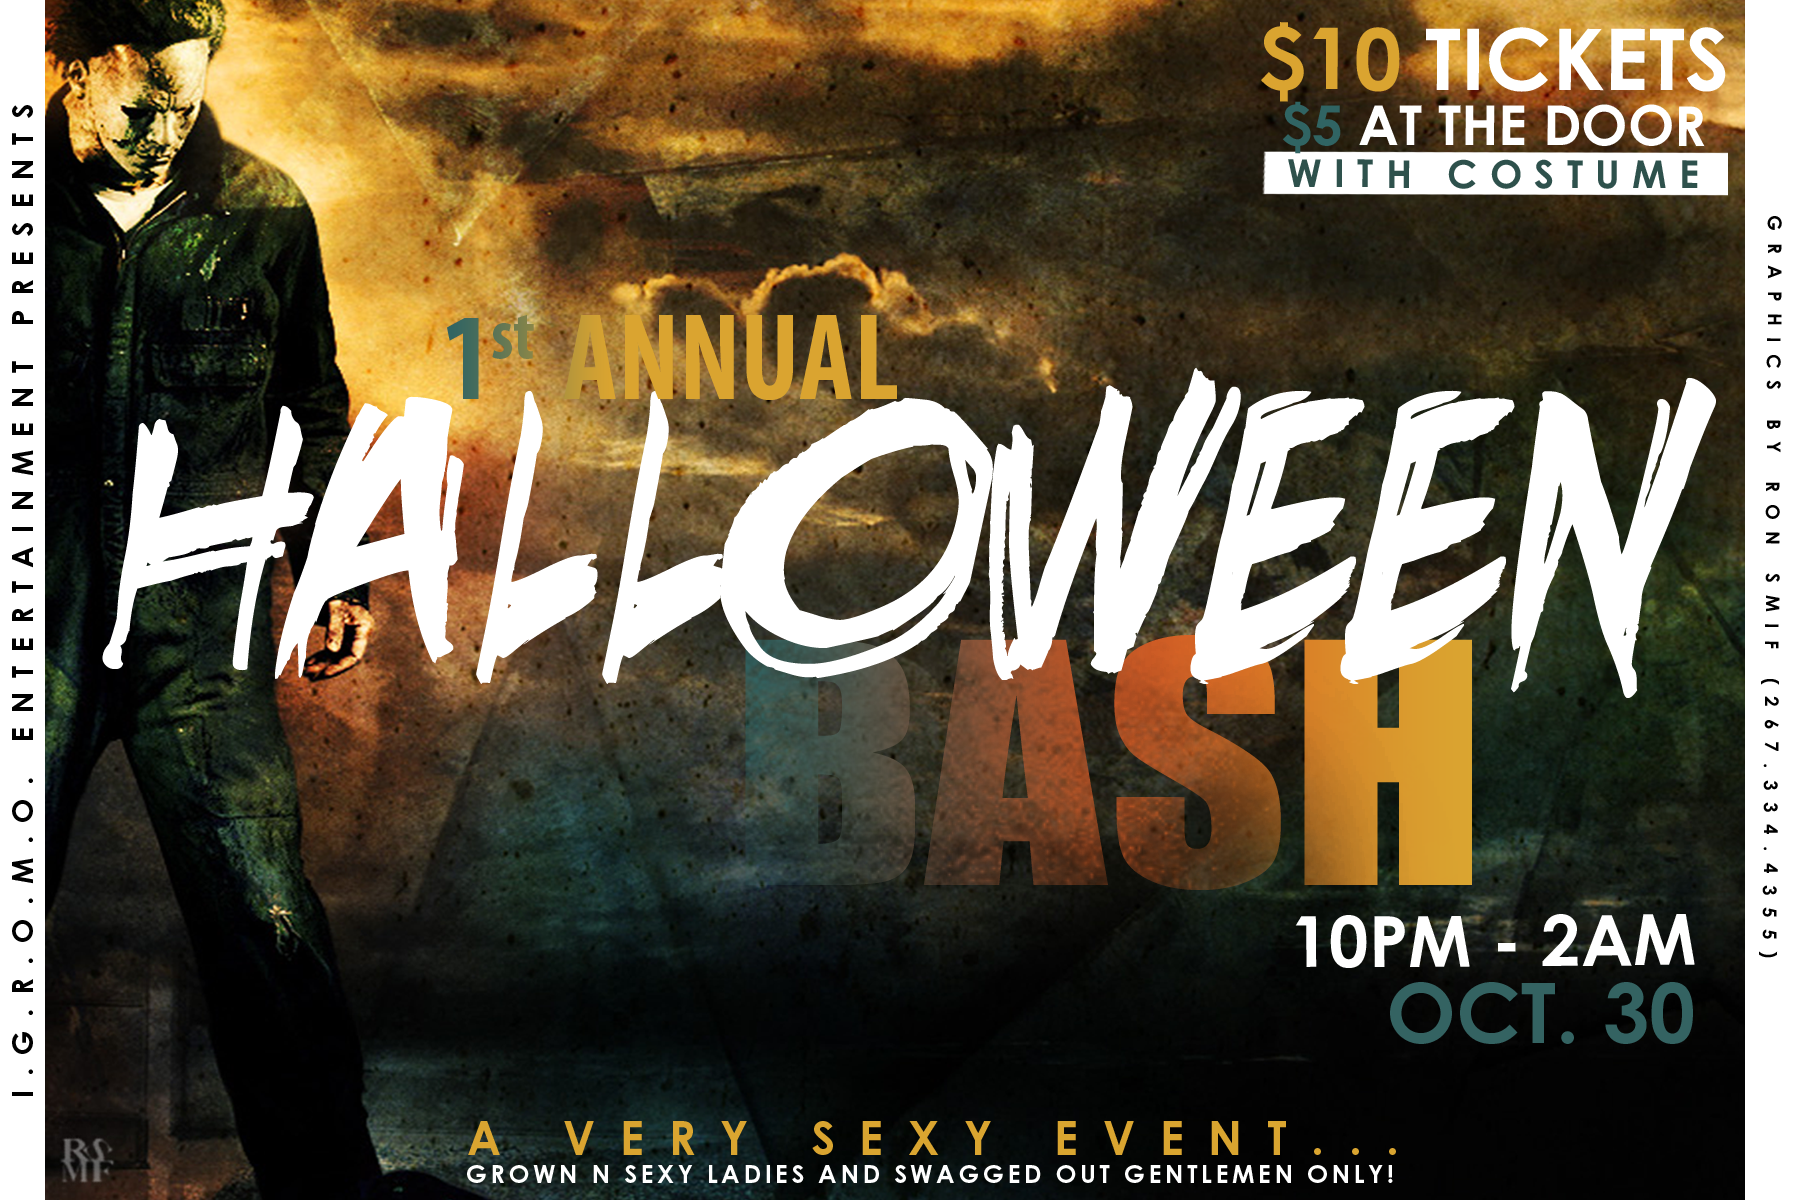 RO HALLOWEEN PARTY FLYER FRONT | Ronald Smith Art